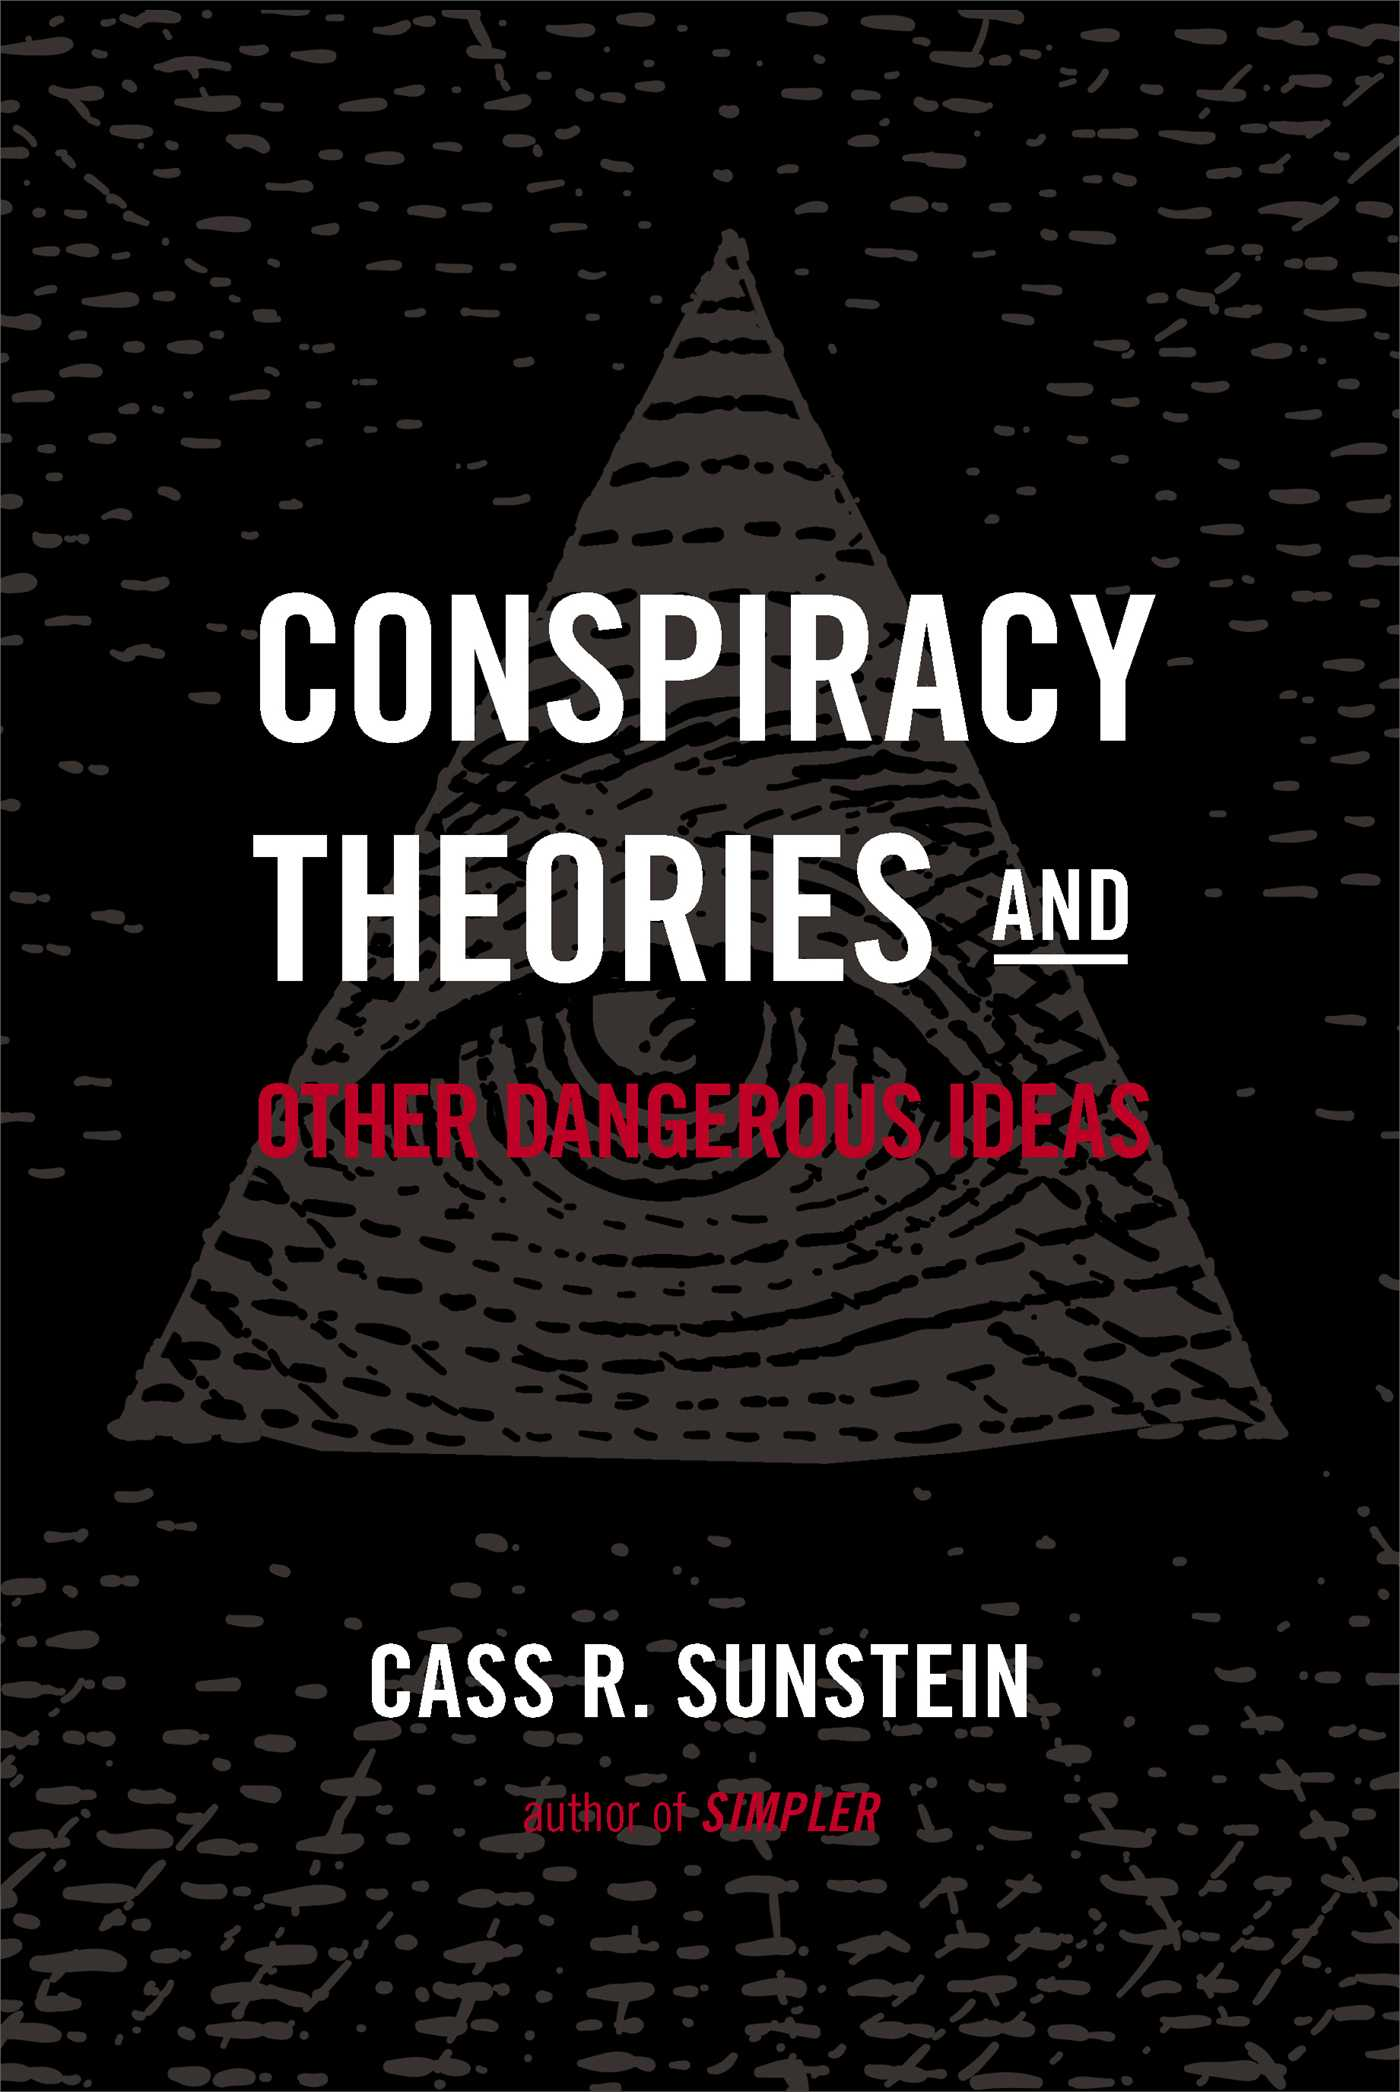 Conspiracy-theories-and-other-dangerous-ideas-9781476726625_hr